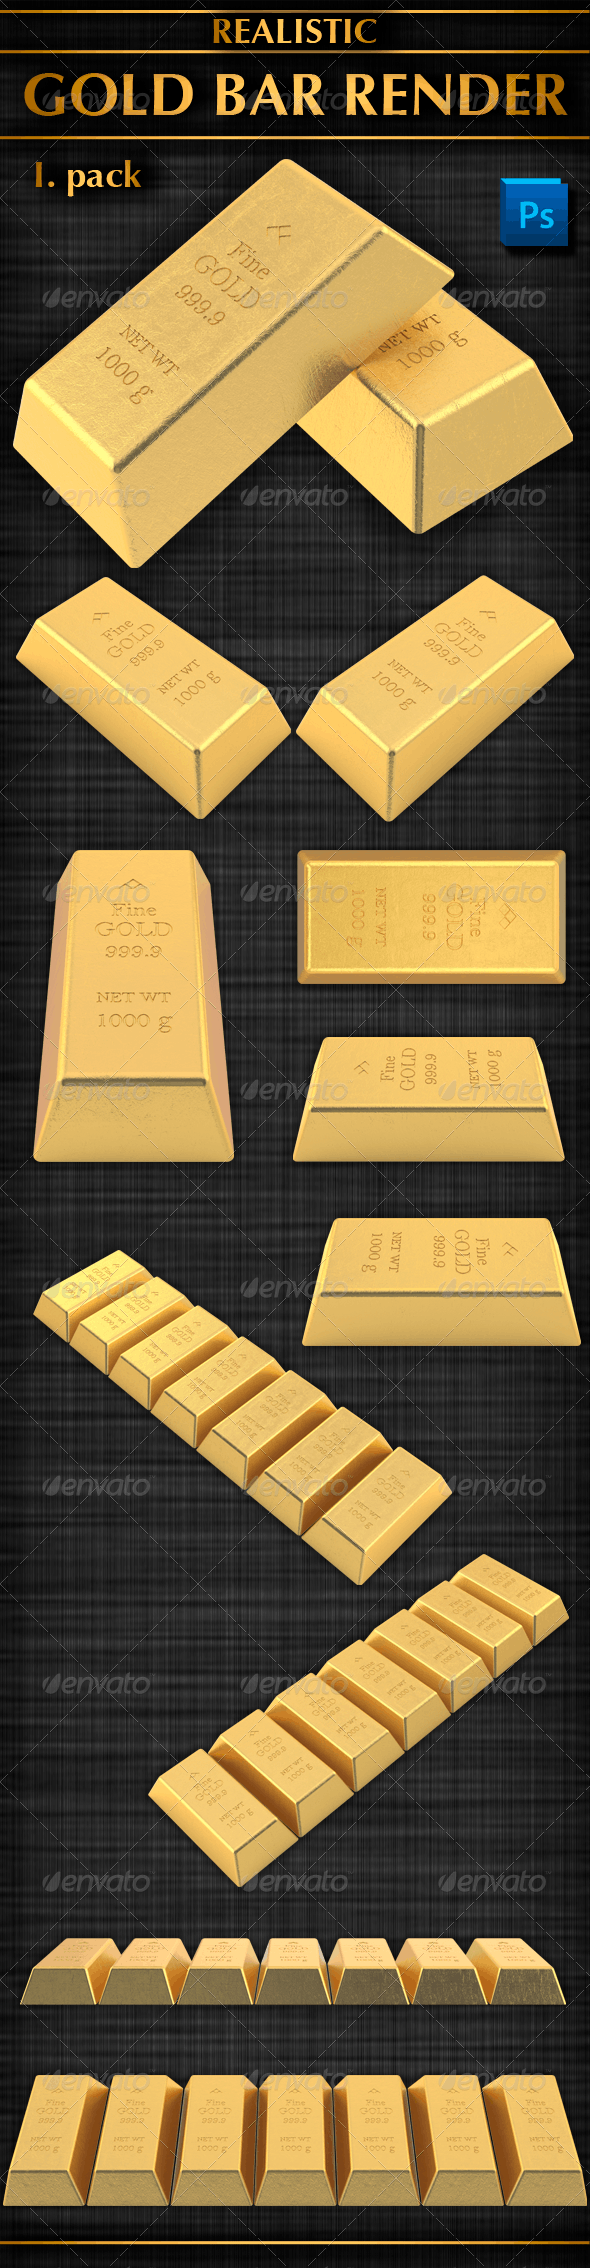 Gold Bar Render (I. Pack) - Objects 3D Renders